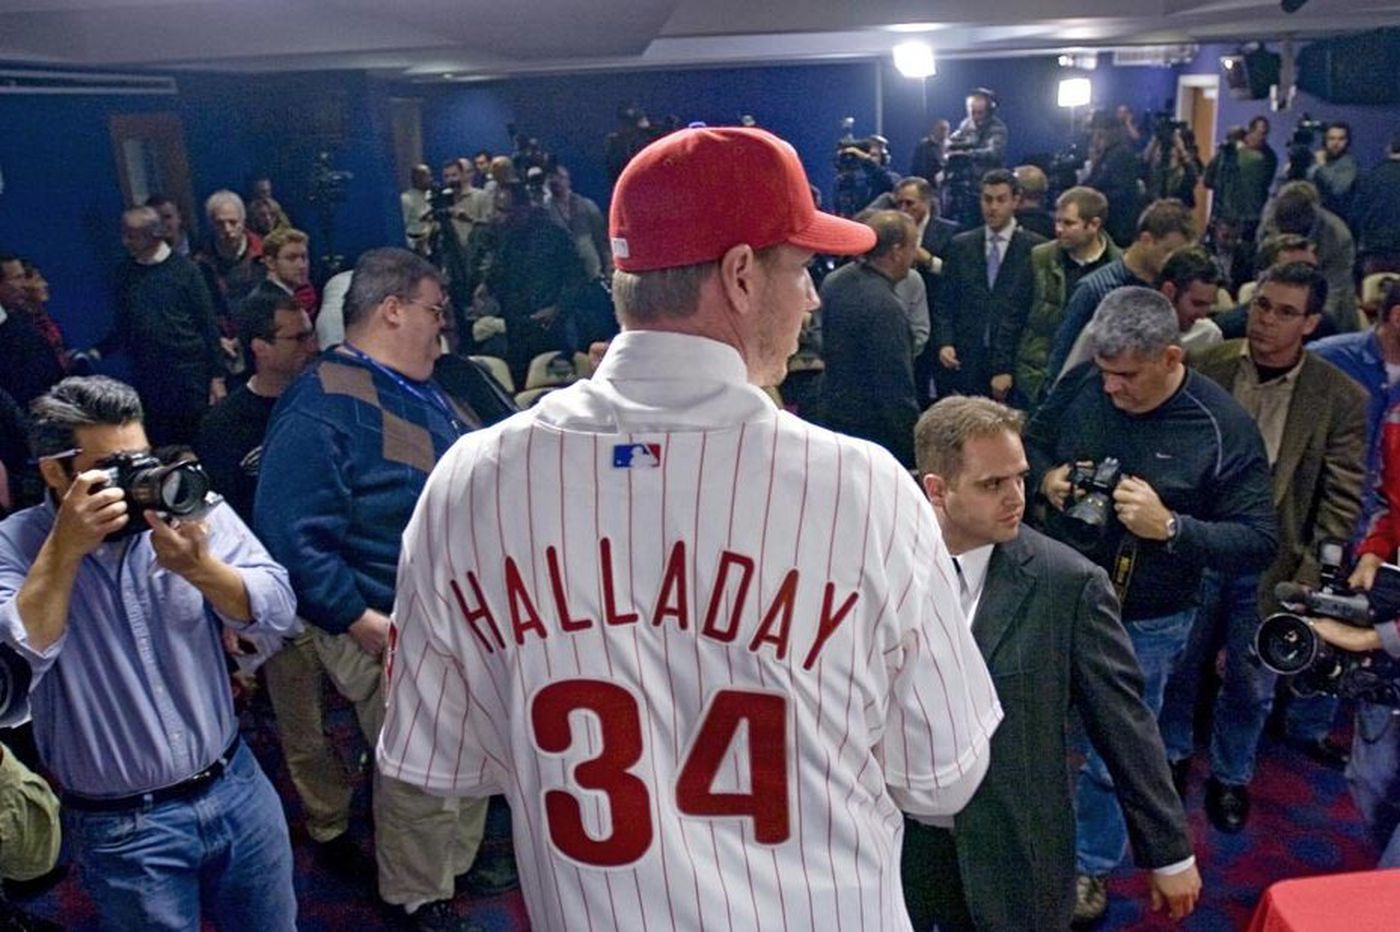 Roy Halladay public memorial service to be held in Phillies' Clearwater stadium